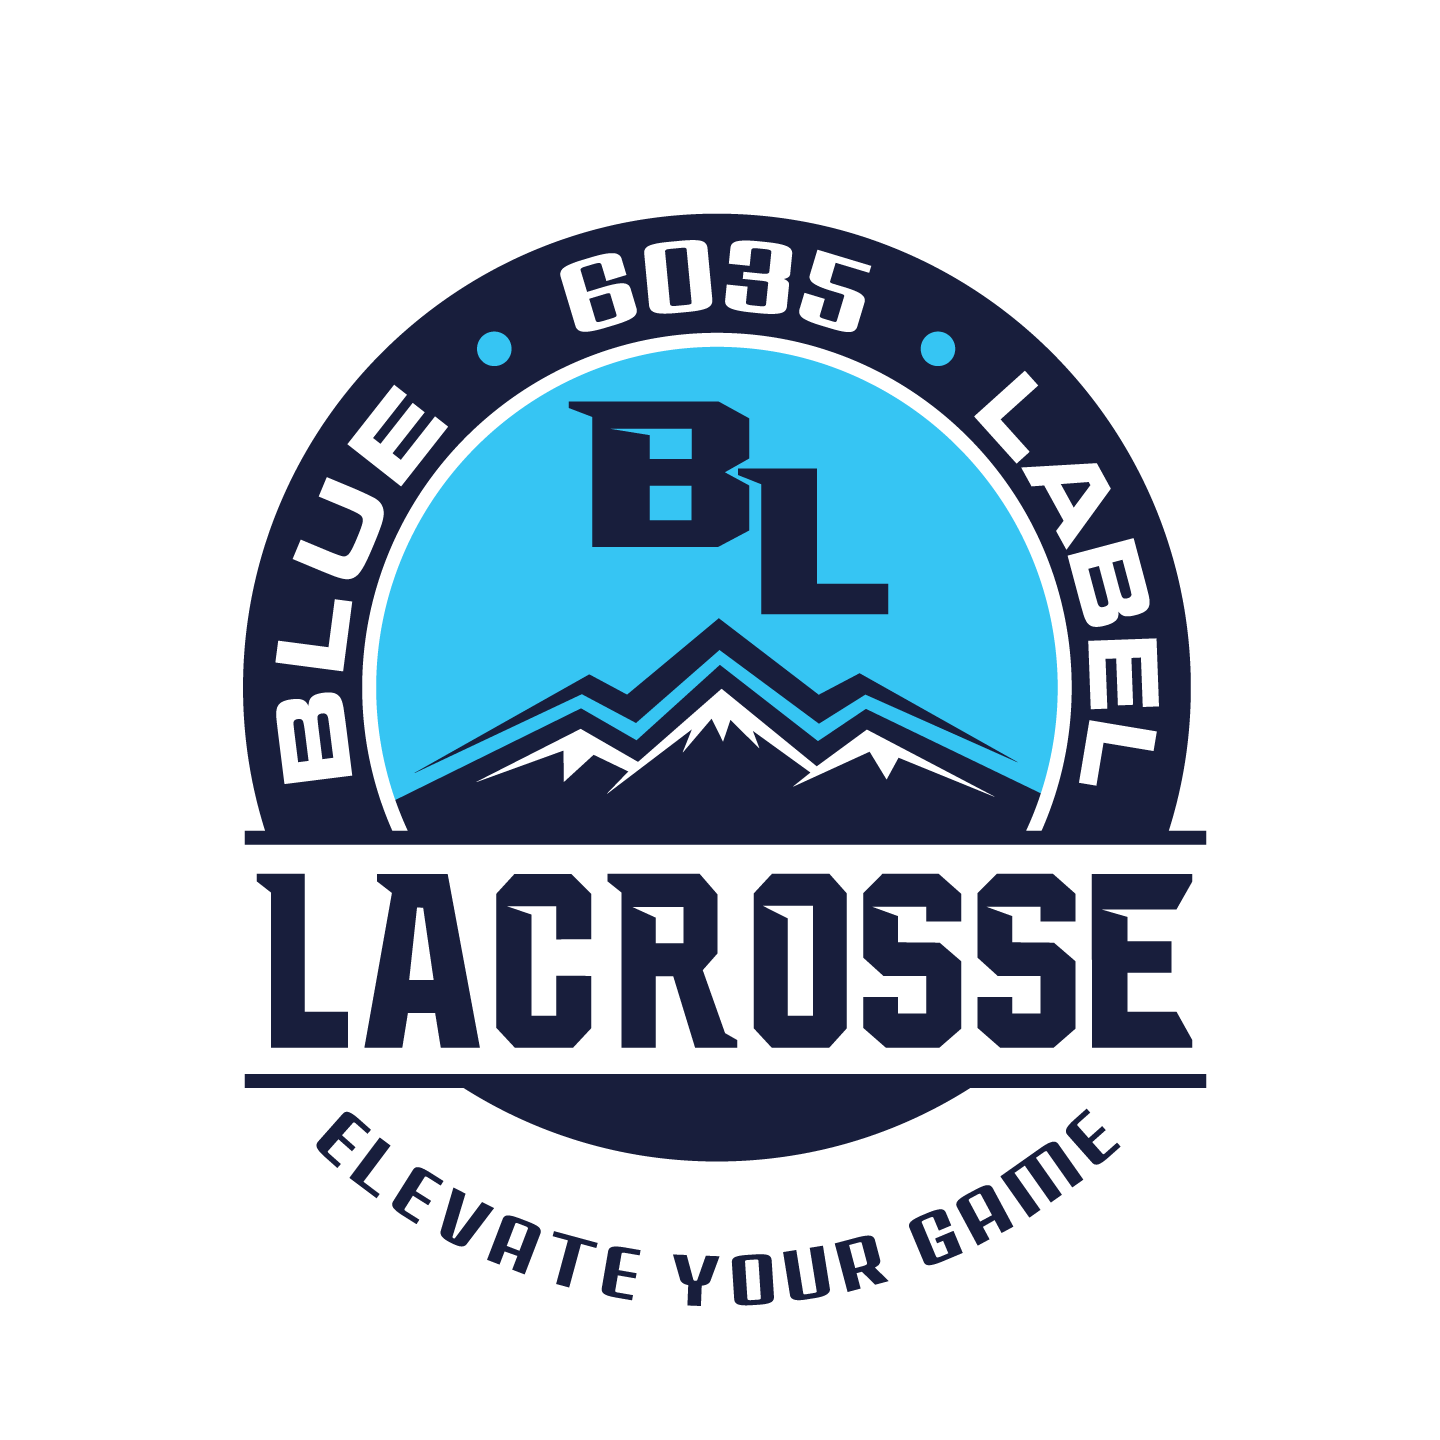 Lacrosse Logo Touch Up